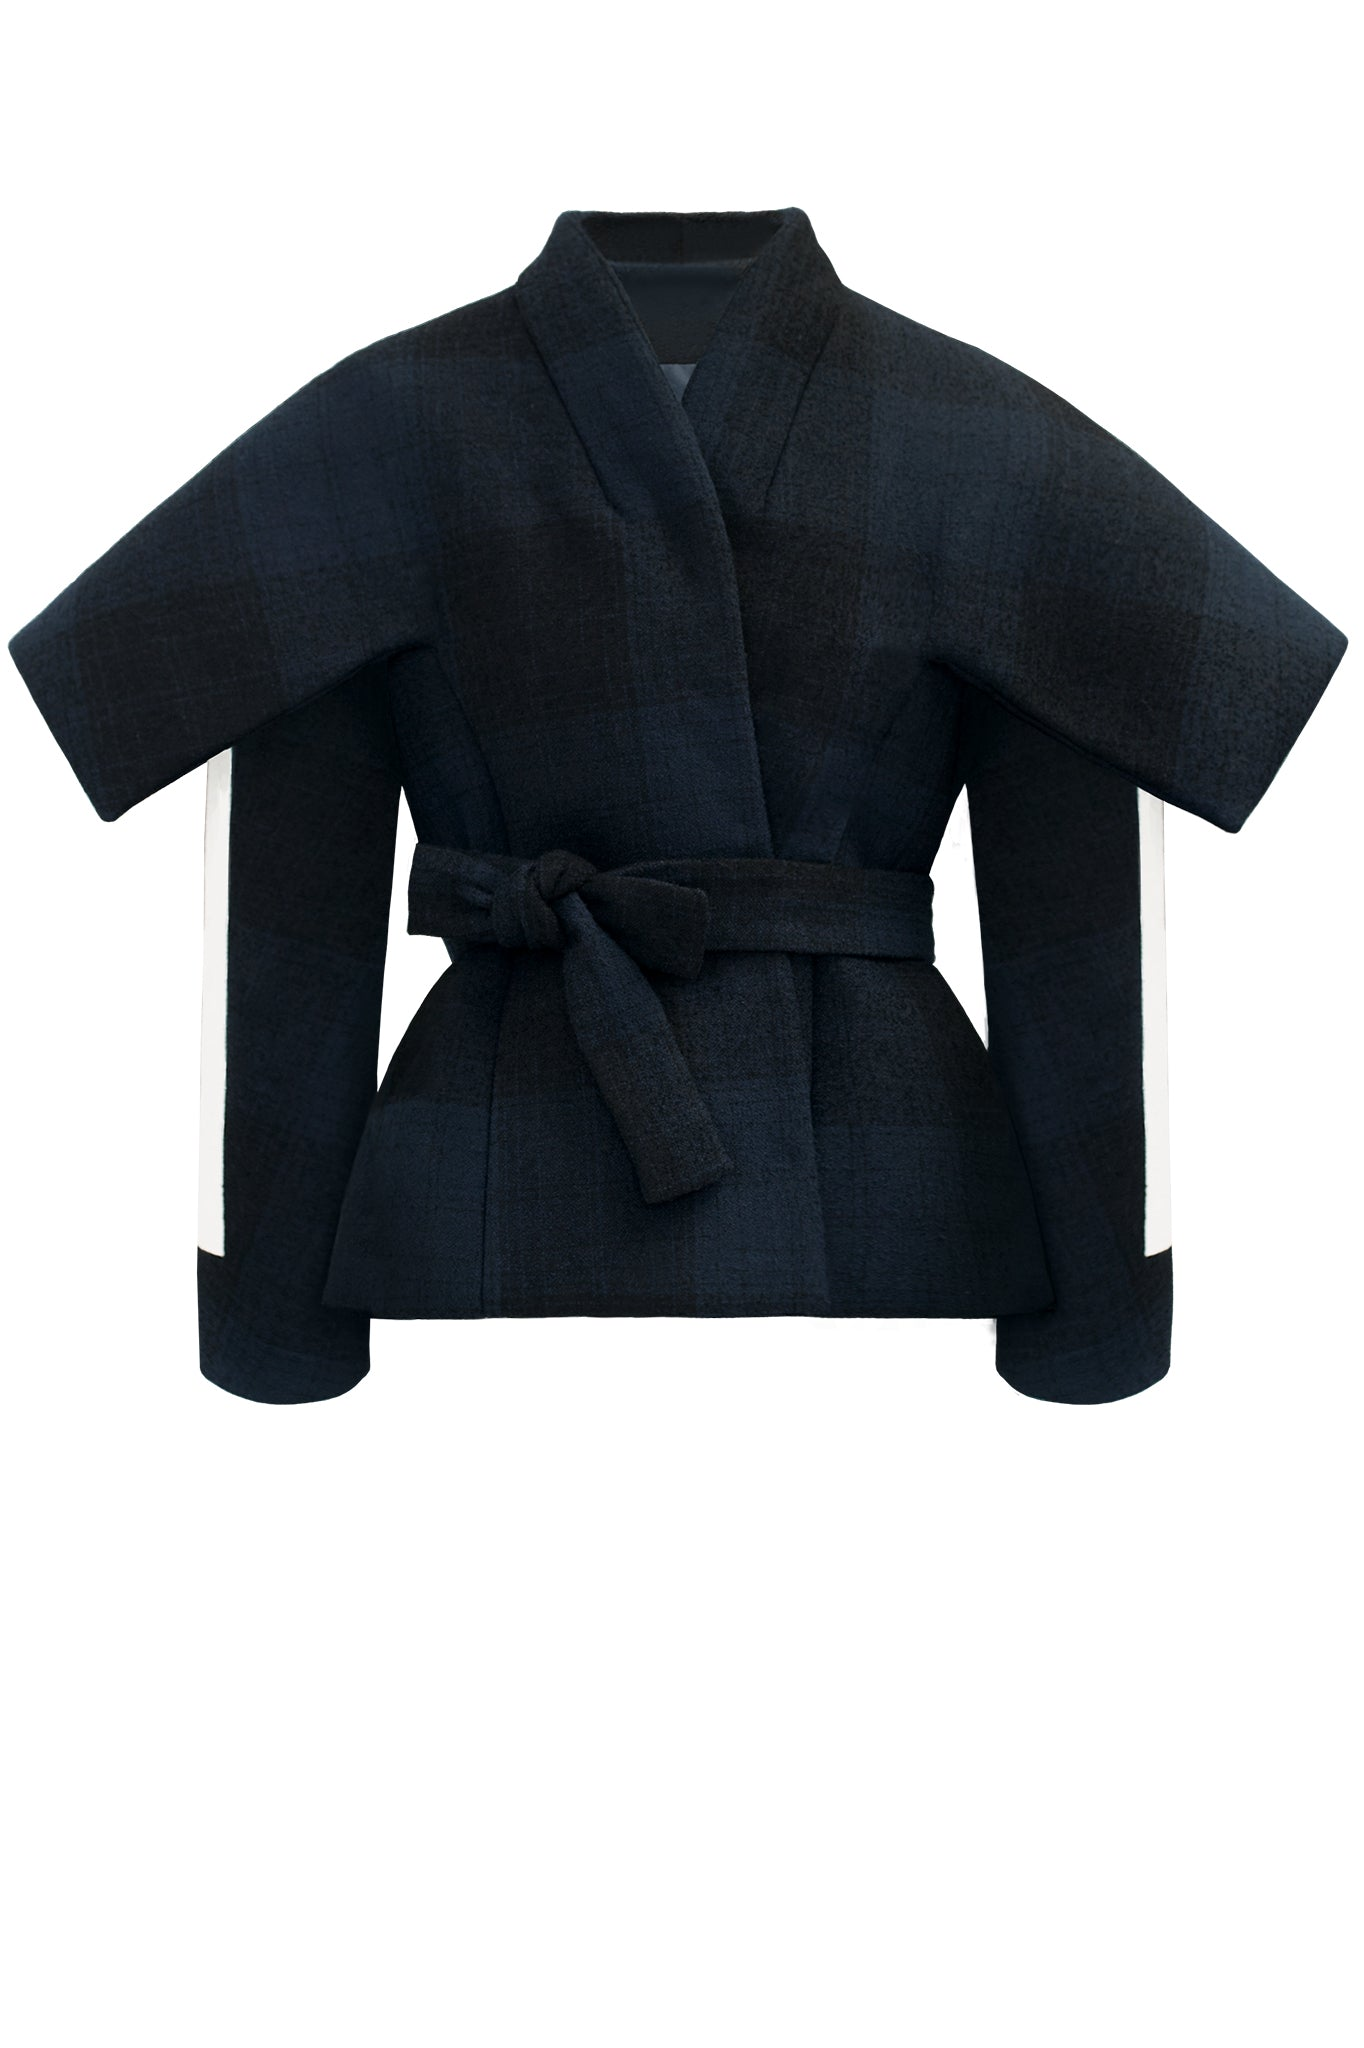 cimone wool striped navy belted jacket